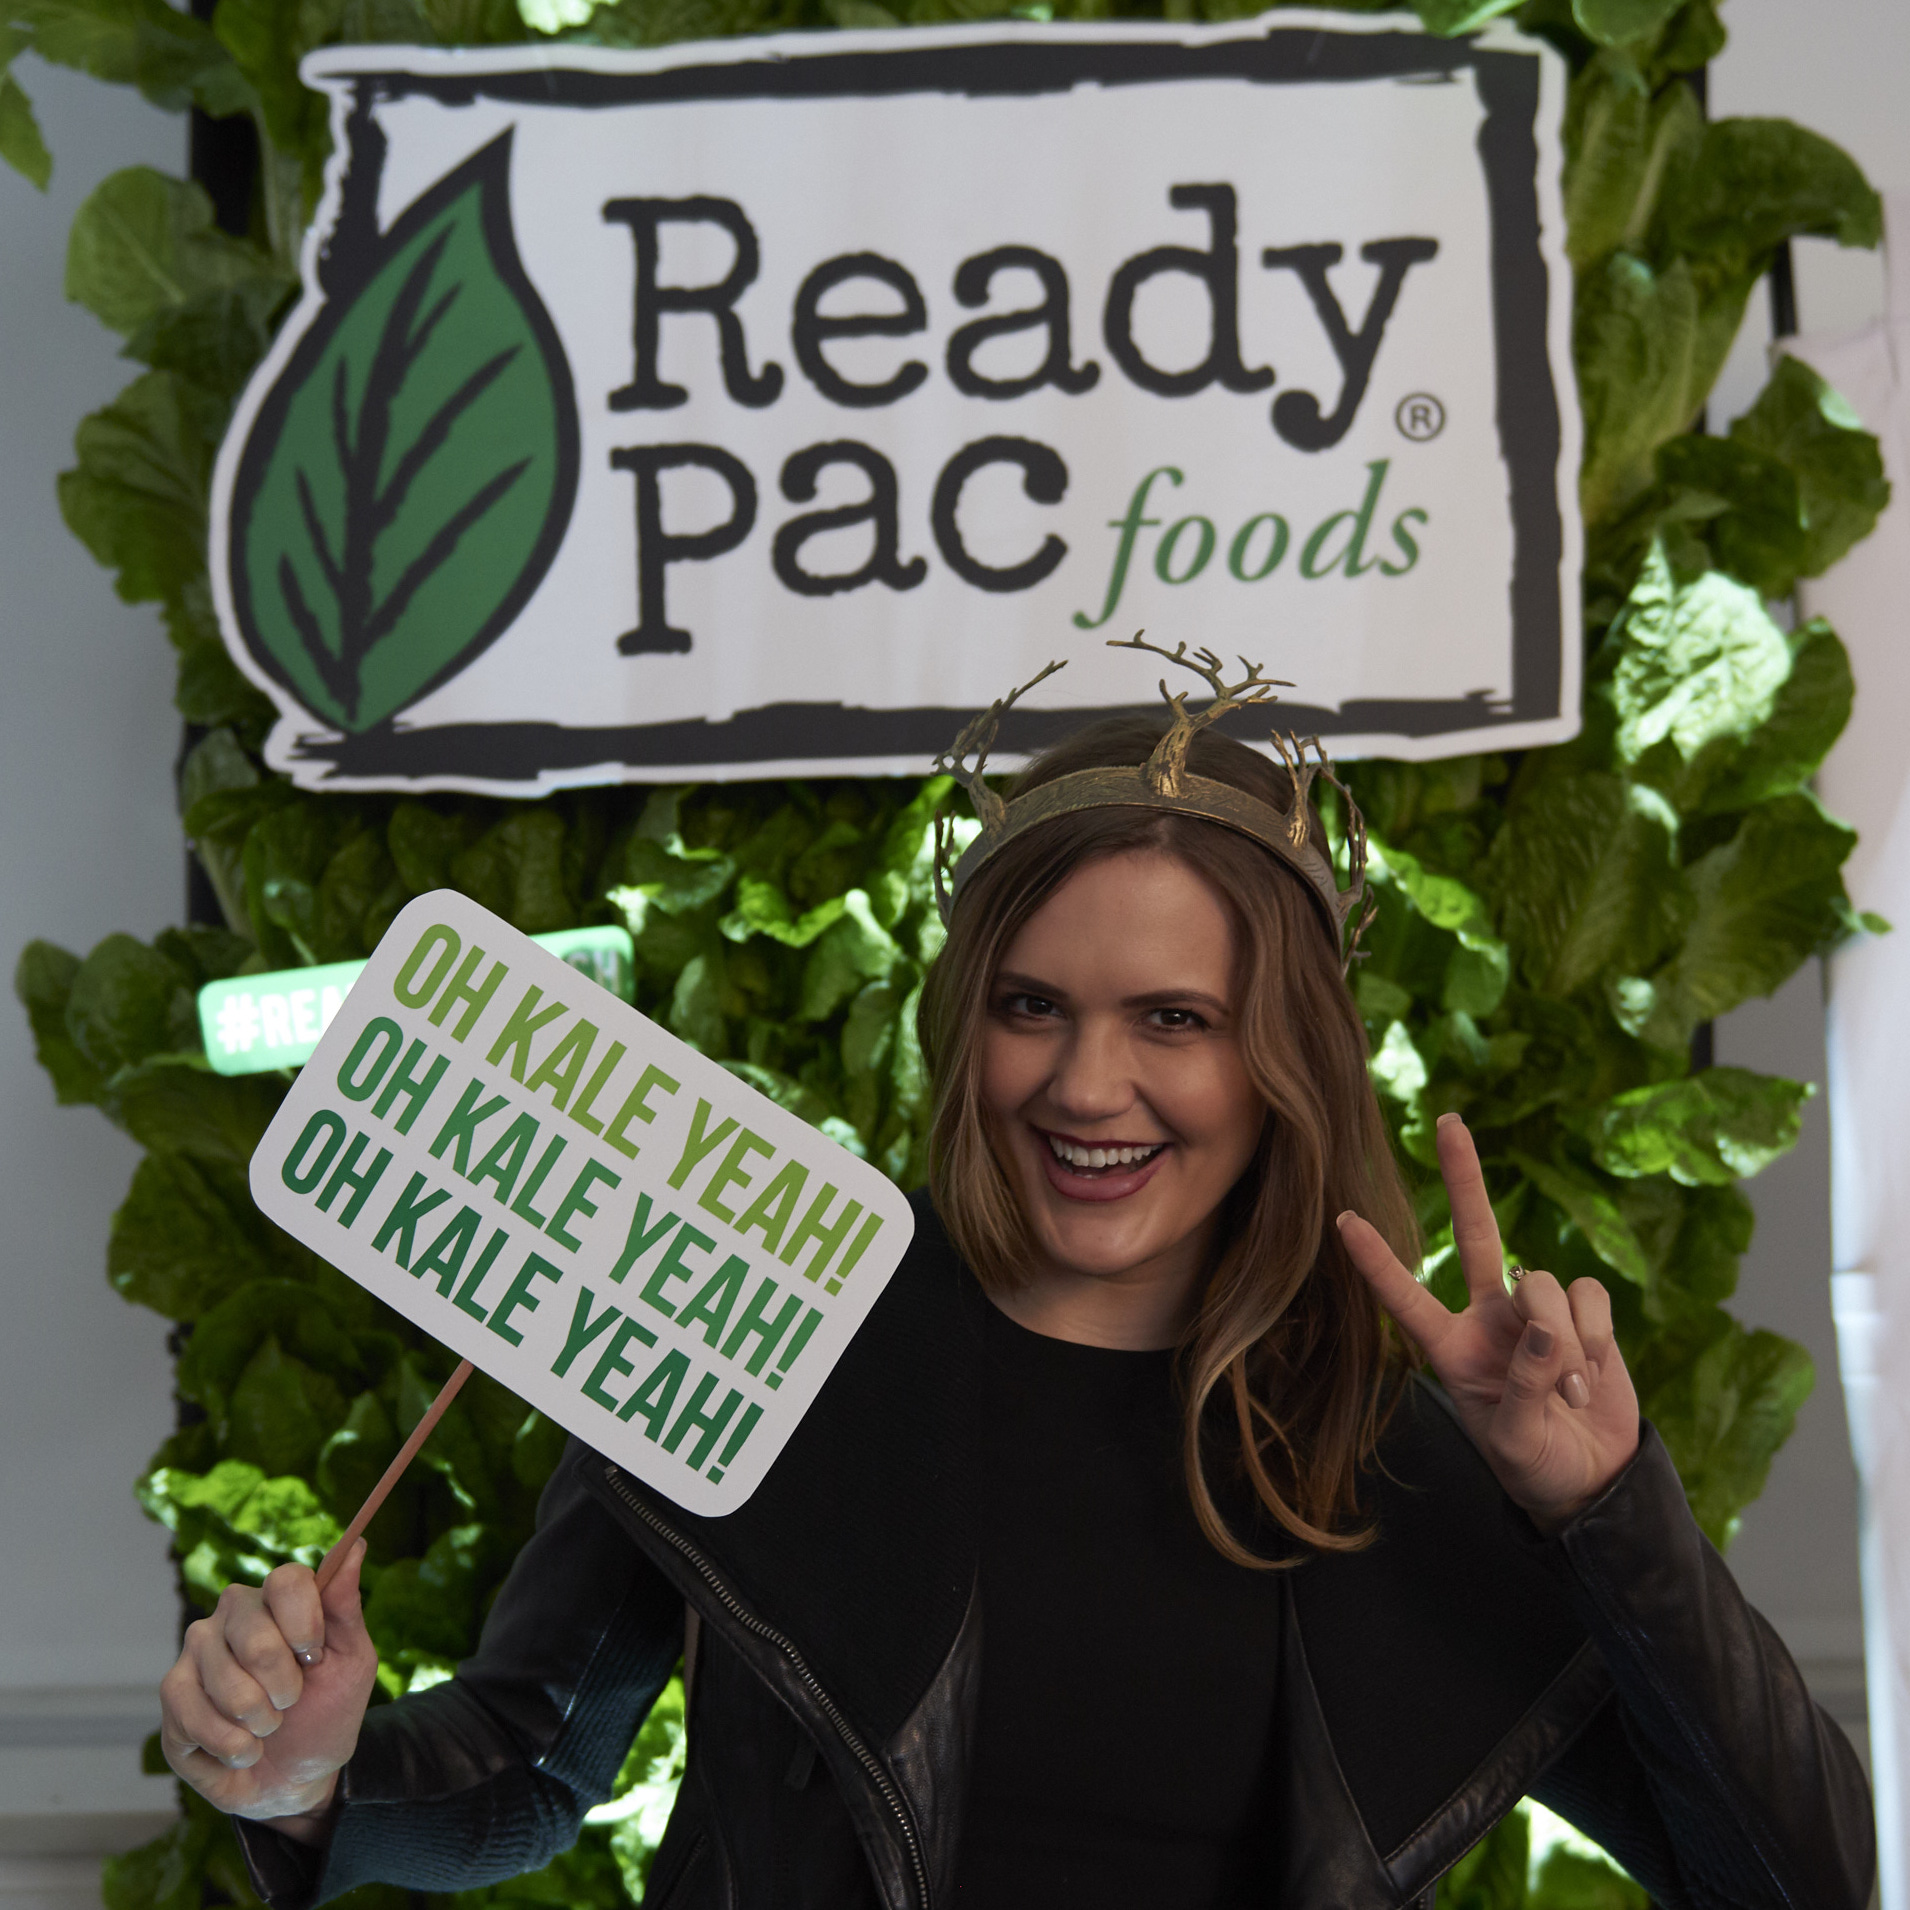 Lettuce Wall Selfies with Ready Pac Foods